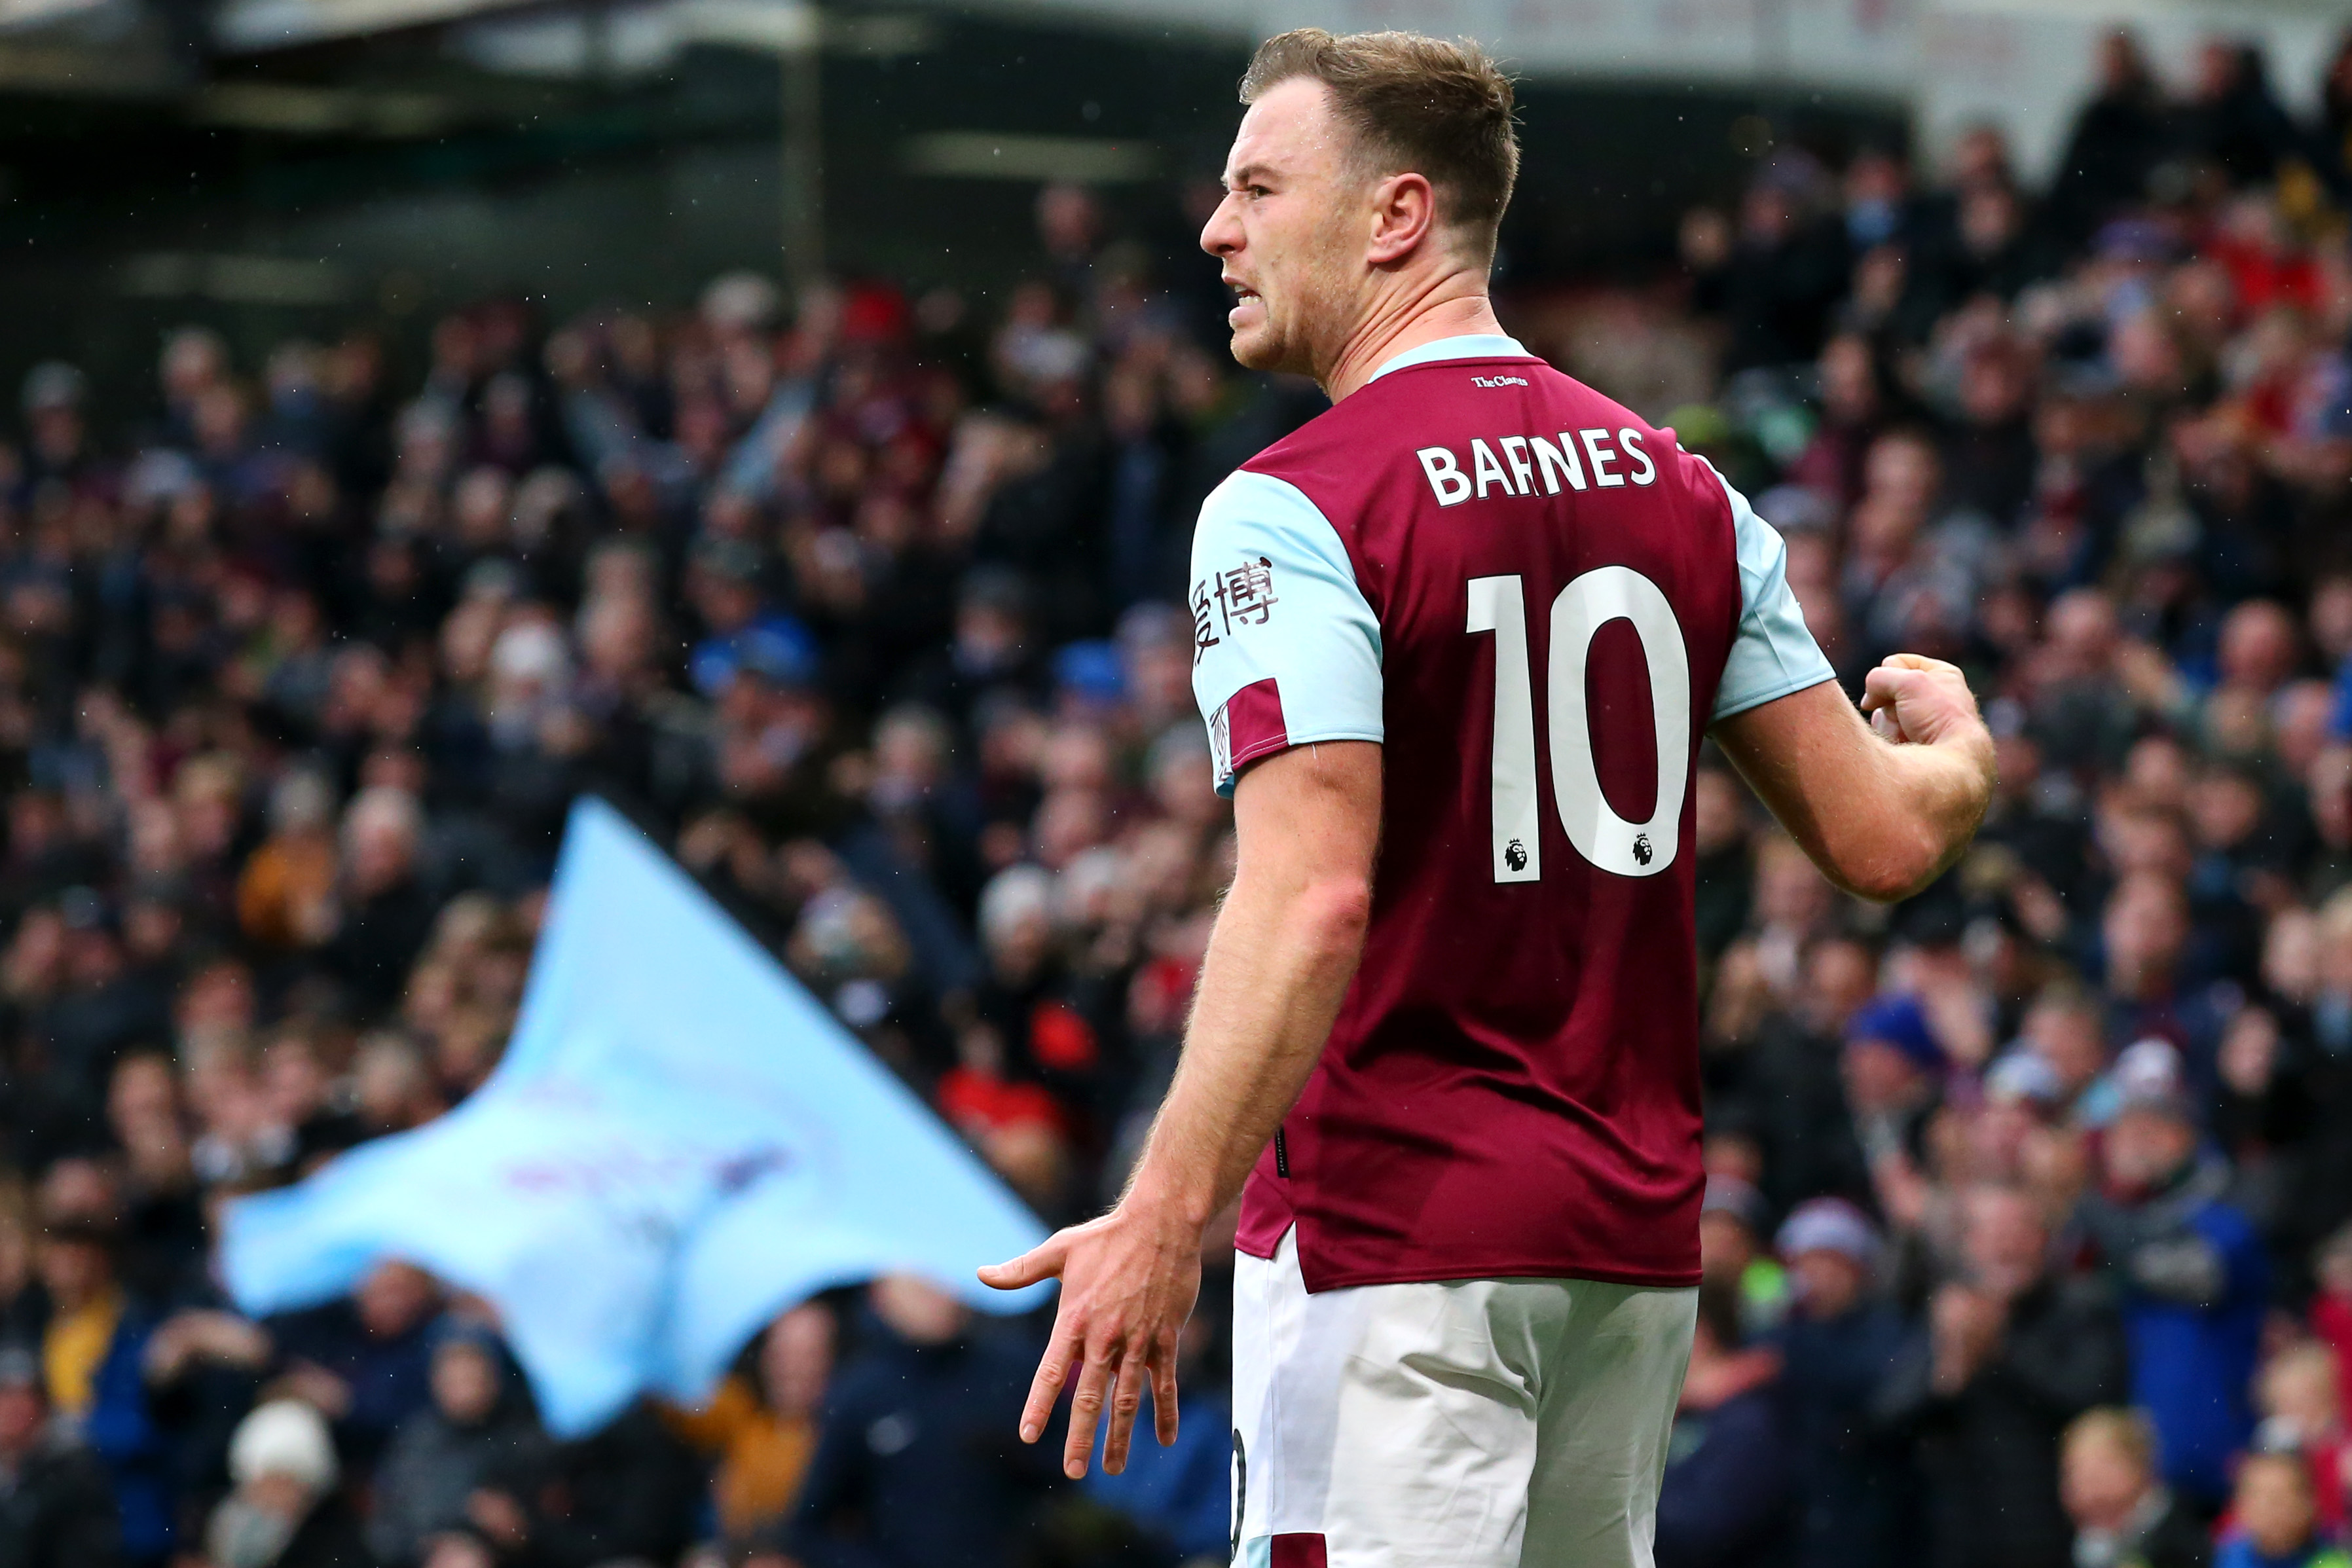 Ashley Barnes is set to return after being rested against Everton. (Photo by Alex Livesey/Getty Images)